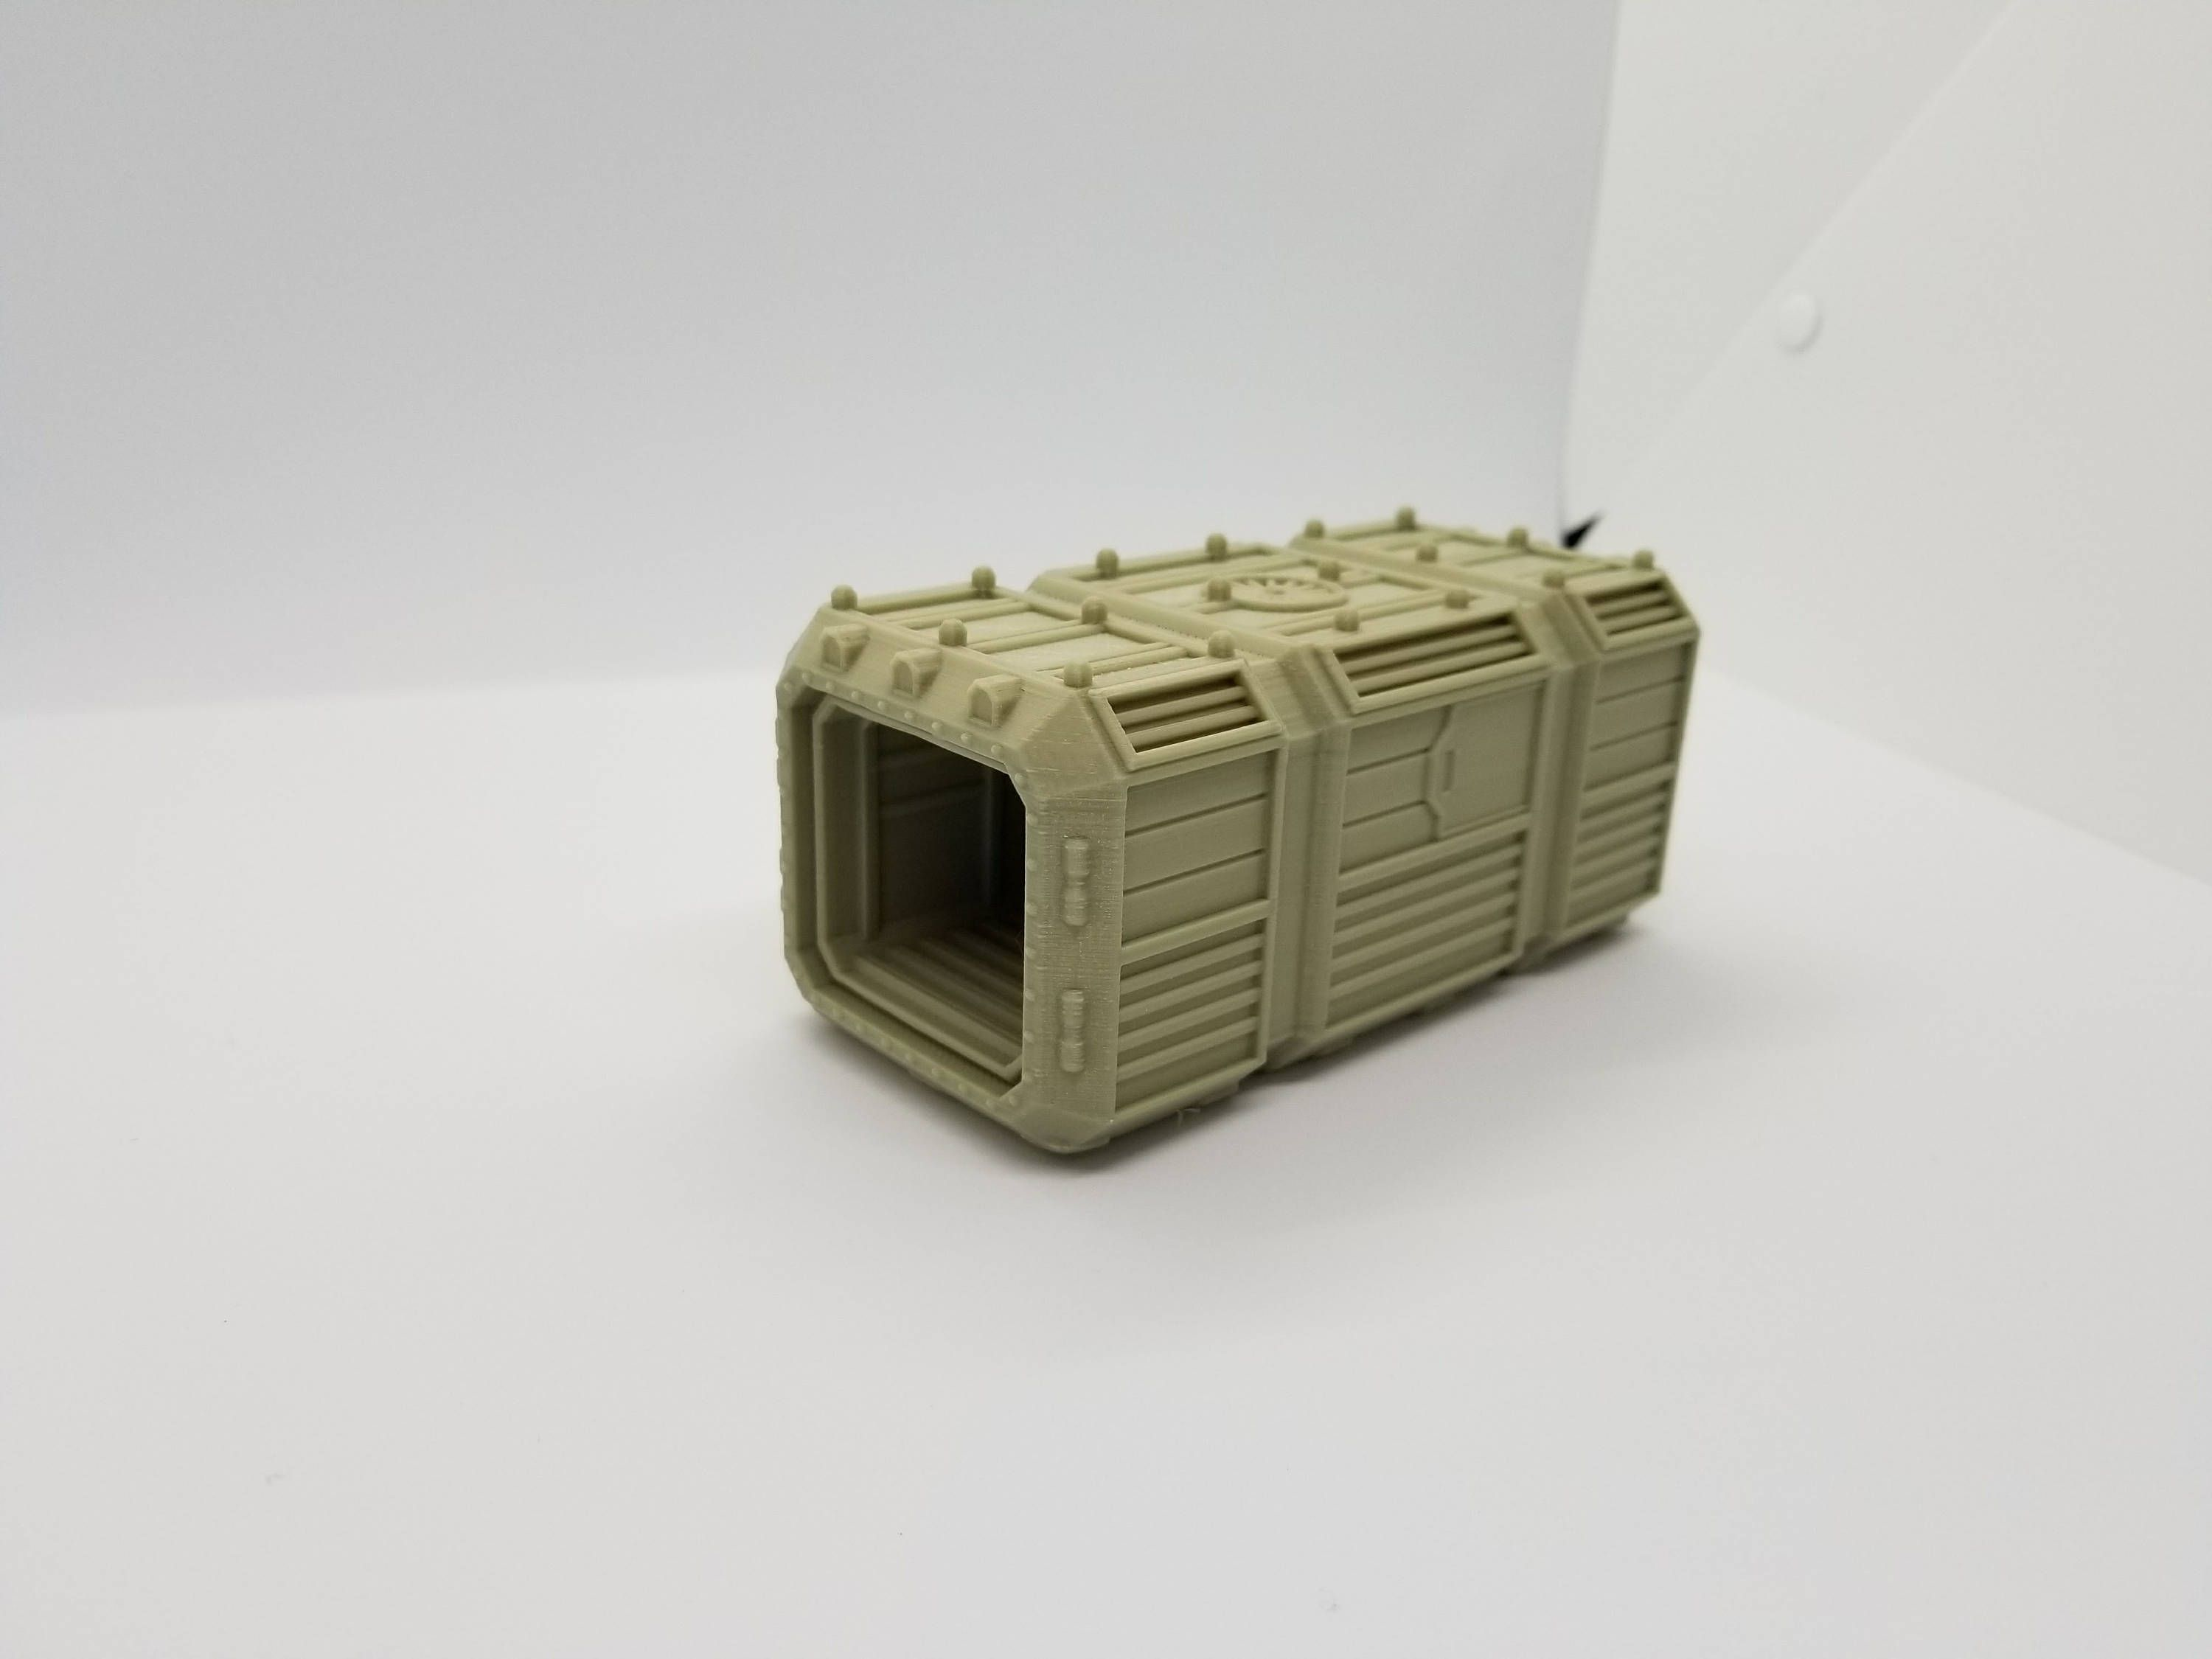 Warlayer / 3d Printed Sci-Fi Open Door Crate / 28mm Wargaming